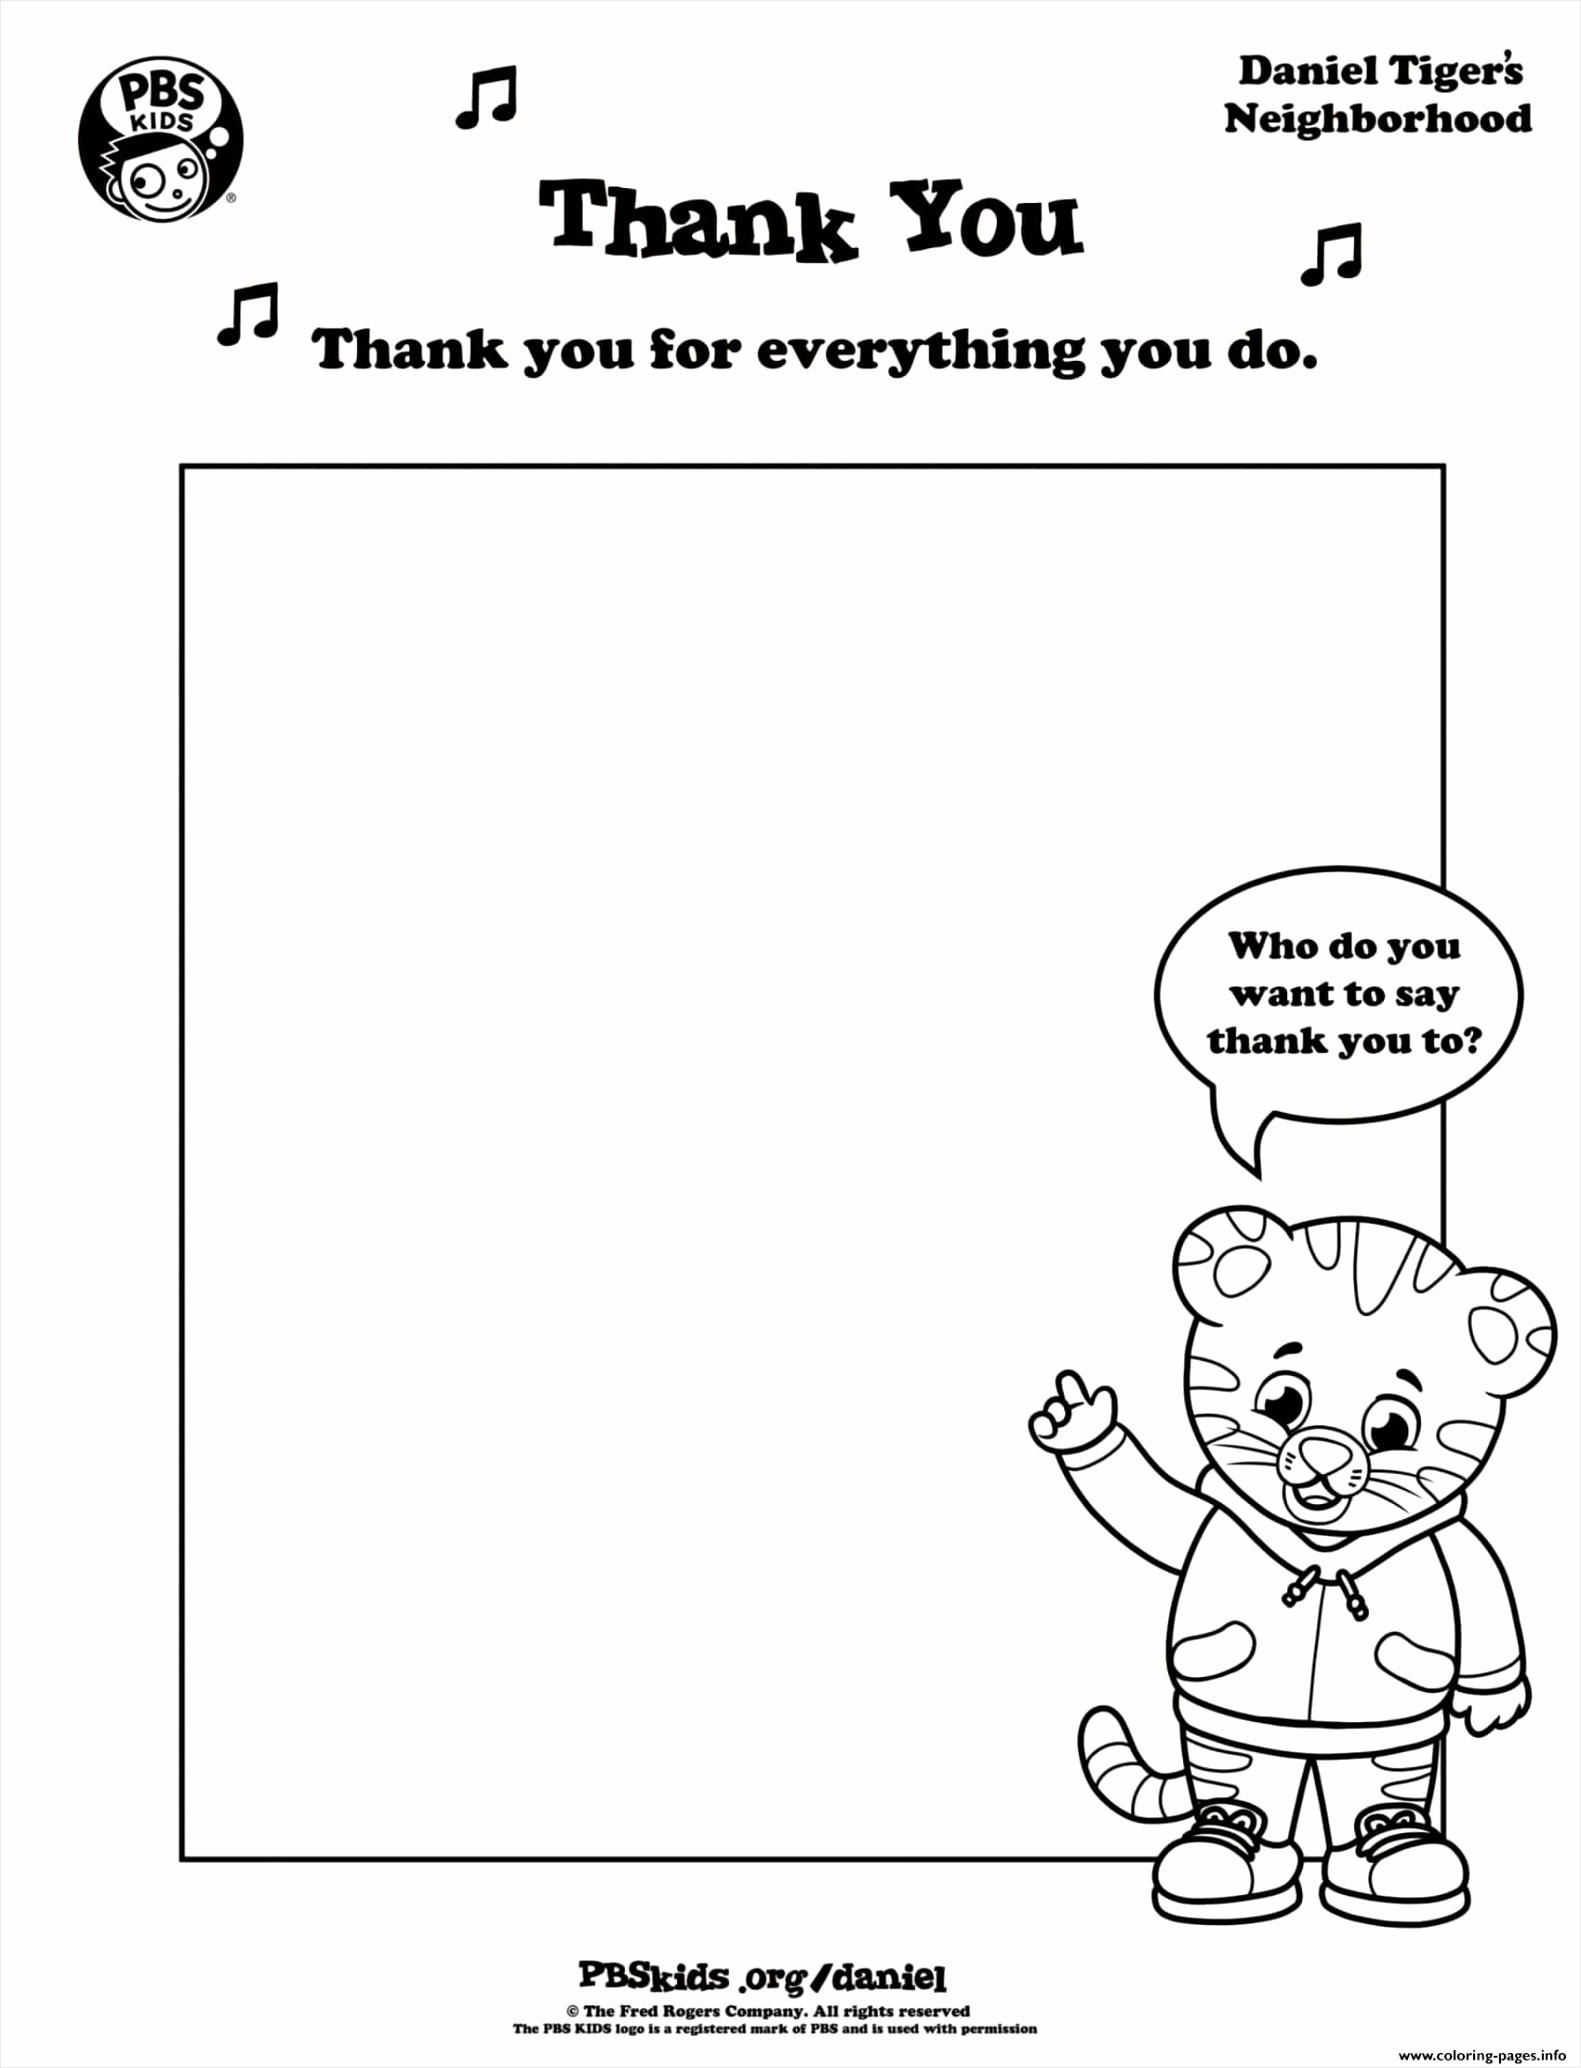 daniel tiger coloring pages free printable sheets for kids iuetr